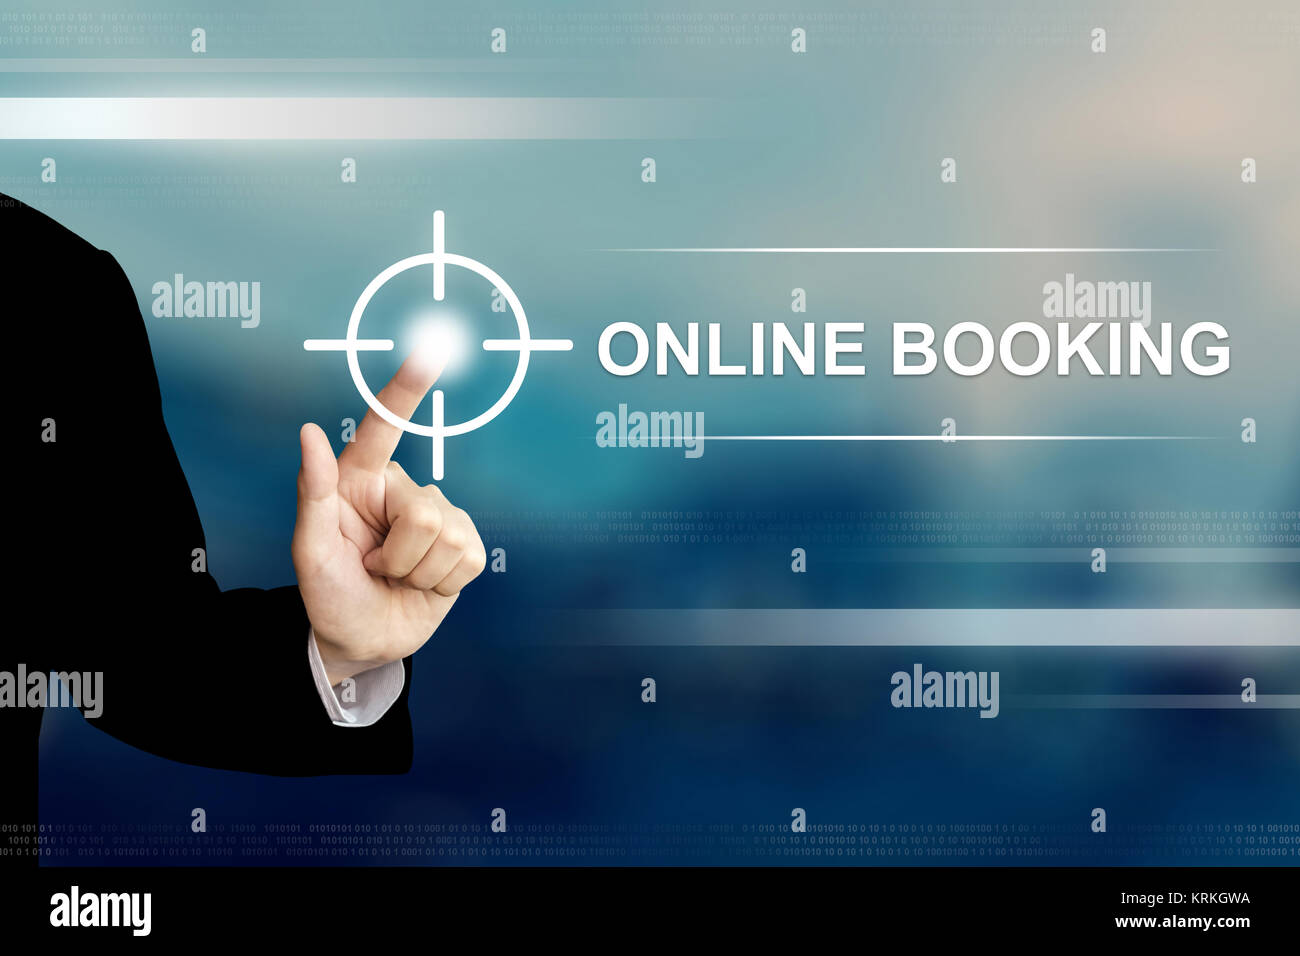 business hand clicking online booking button on touch screen - Stock Image